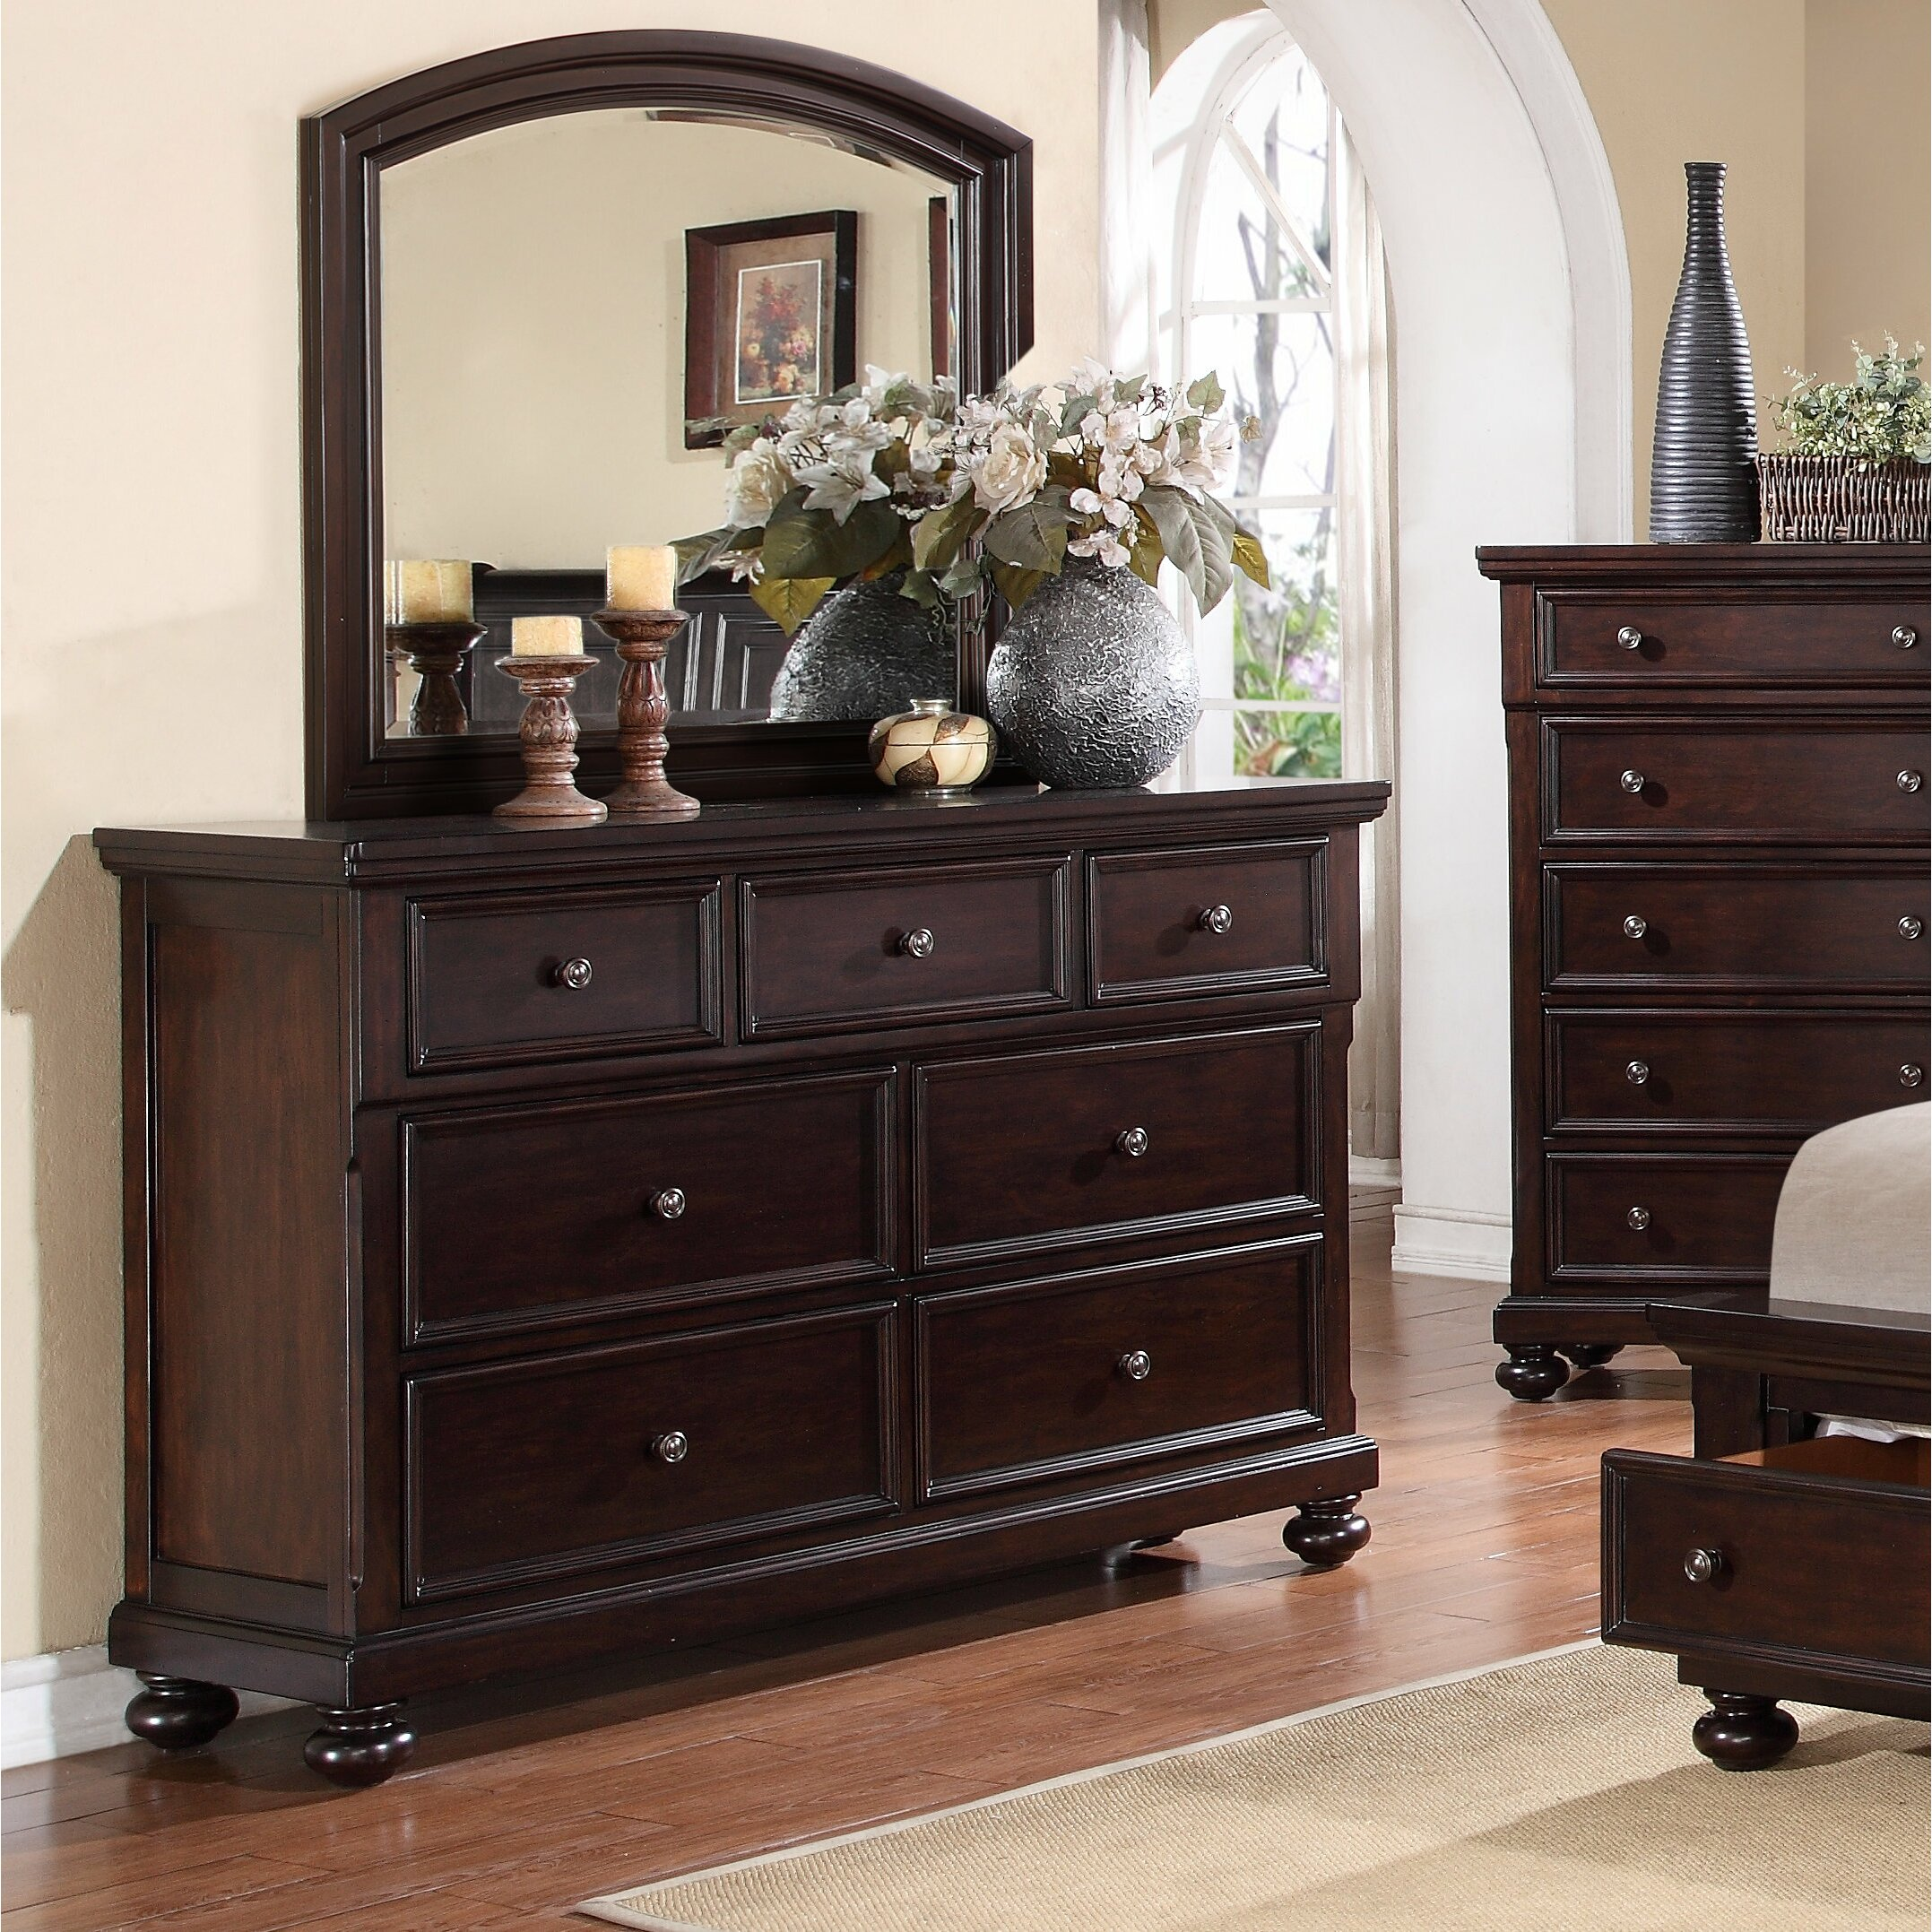 Roundhill Furniture Brishland Platform 5 Piece Bedroom Set Wayfair